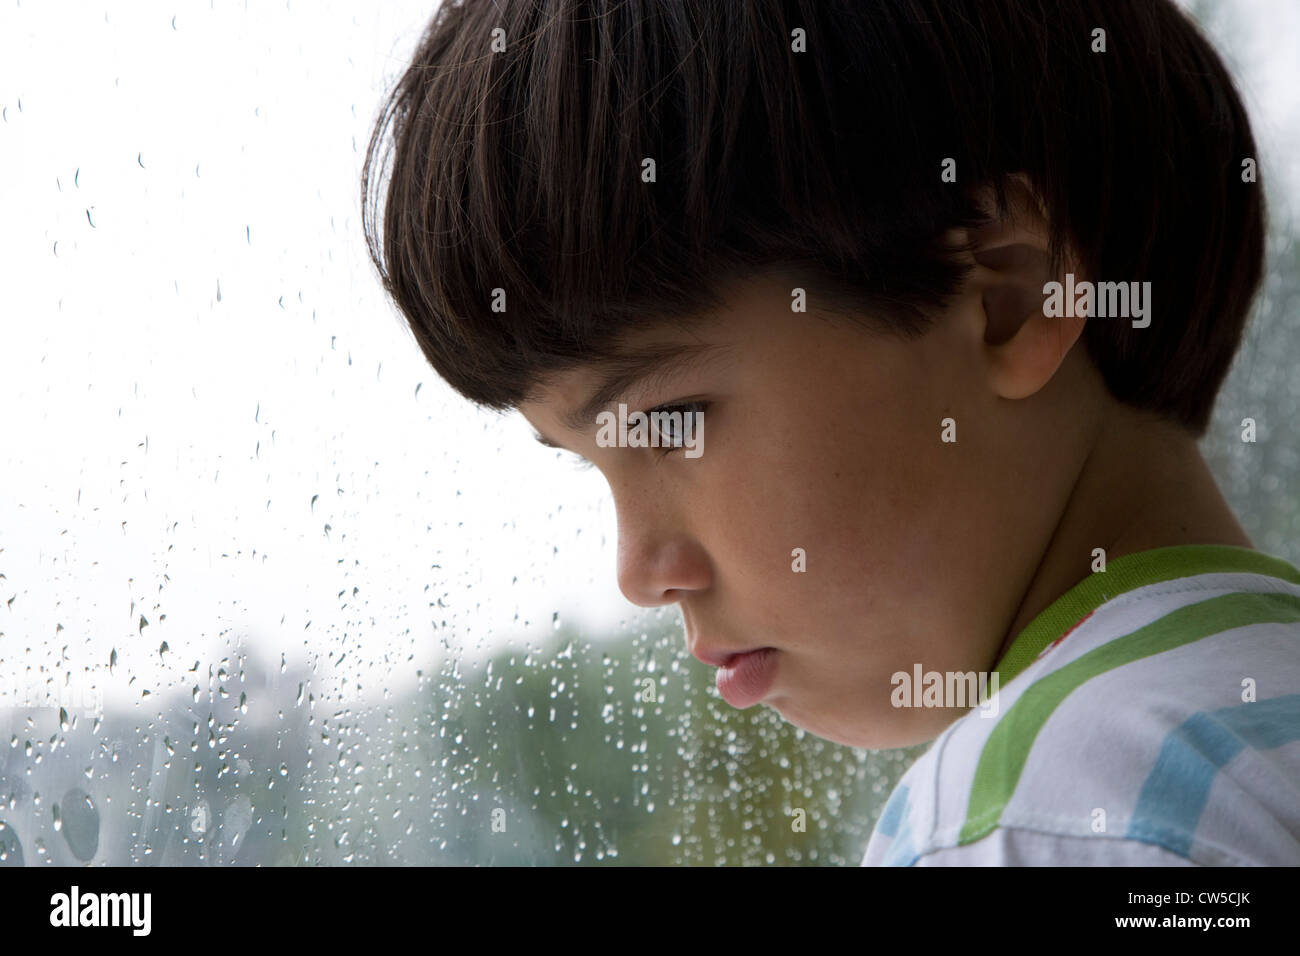 Close-up of a boy looking out a window on a rainy day - Stock Image